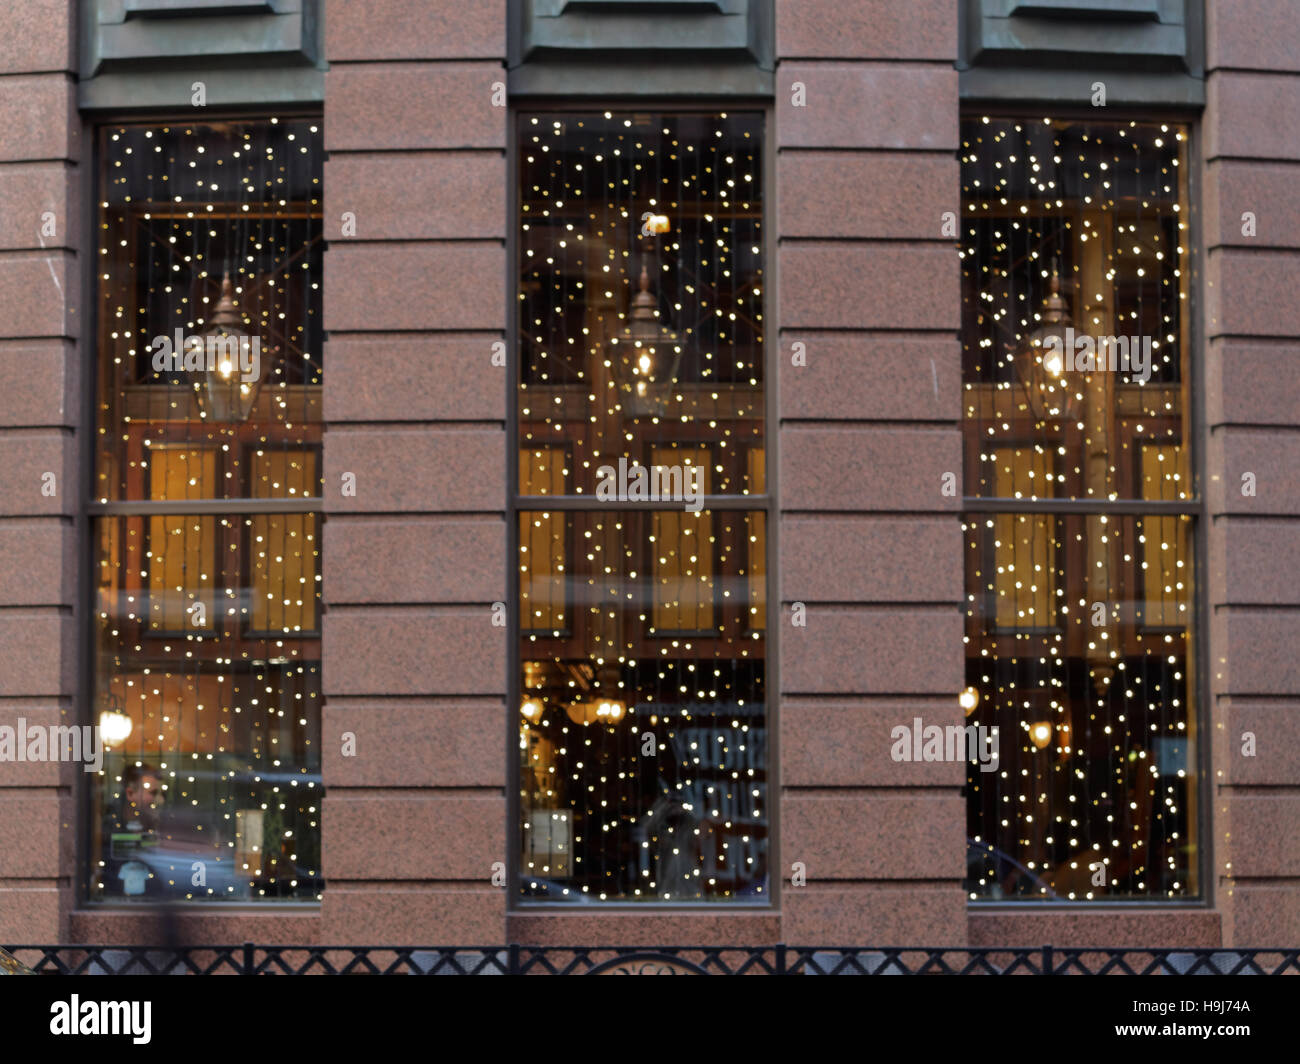 Glasgow Restaurant Windows Lit Up By Christmas Decorations Stock